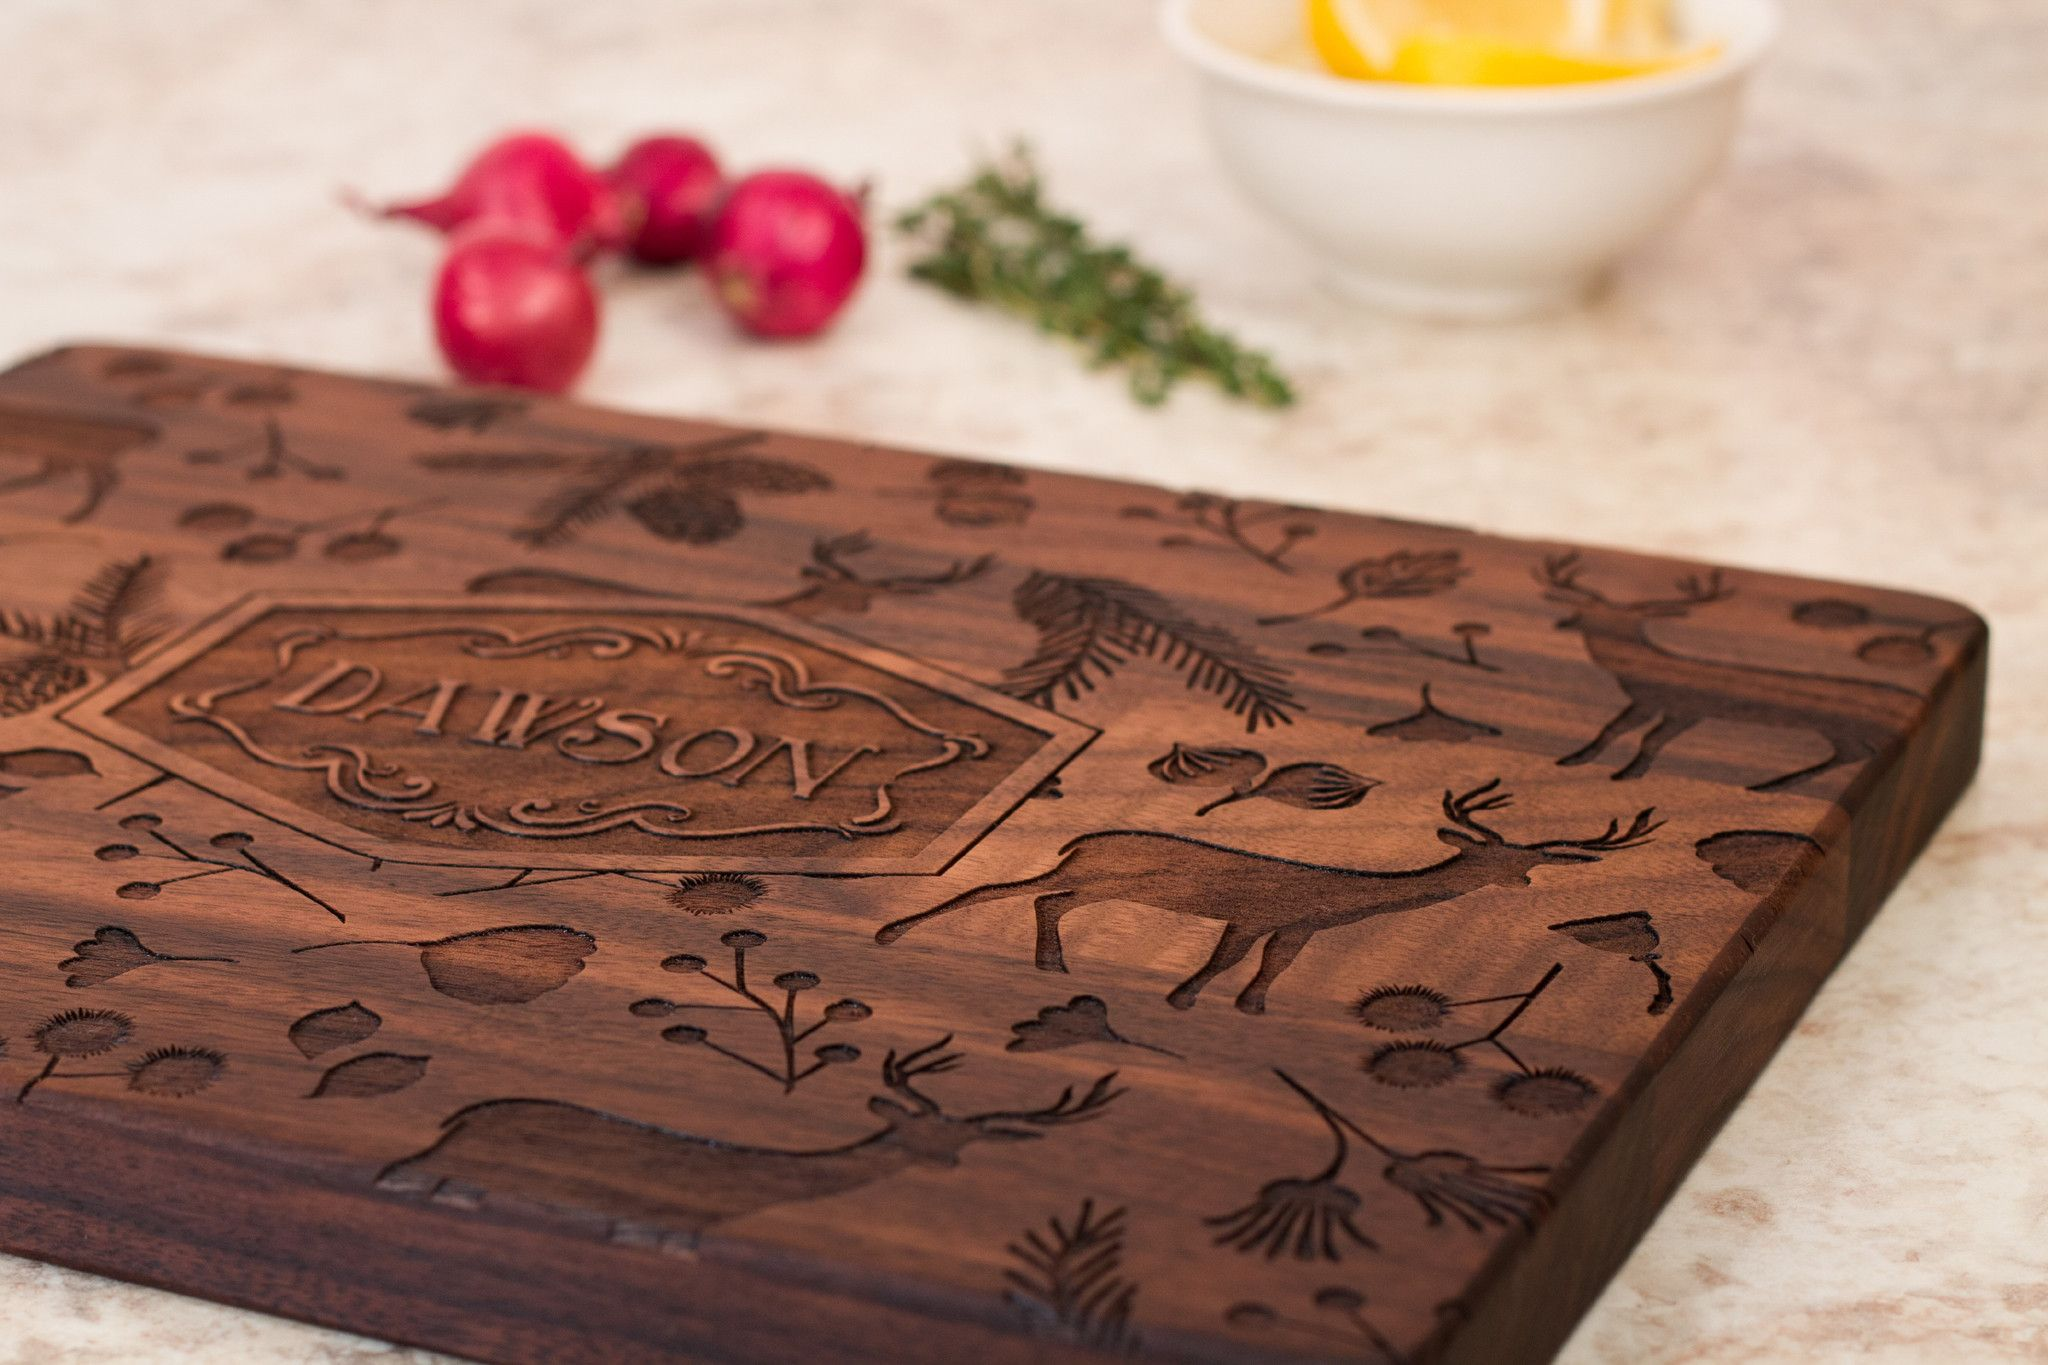 cu122 woodland deer antlers personalized engraved wooden cutting